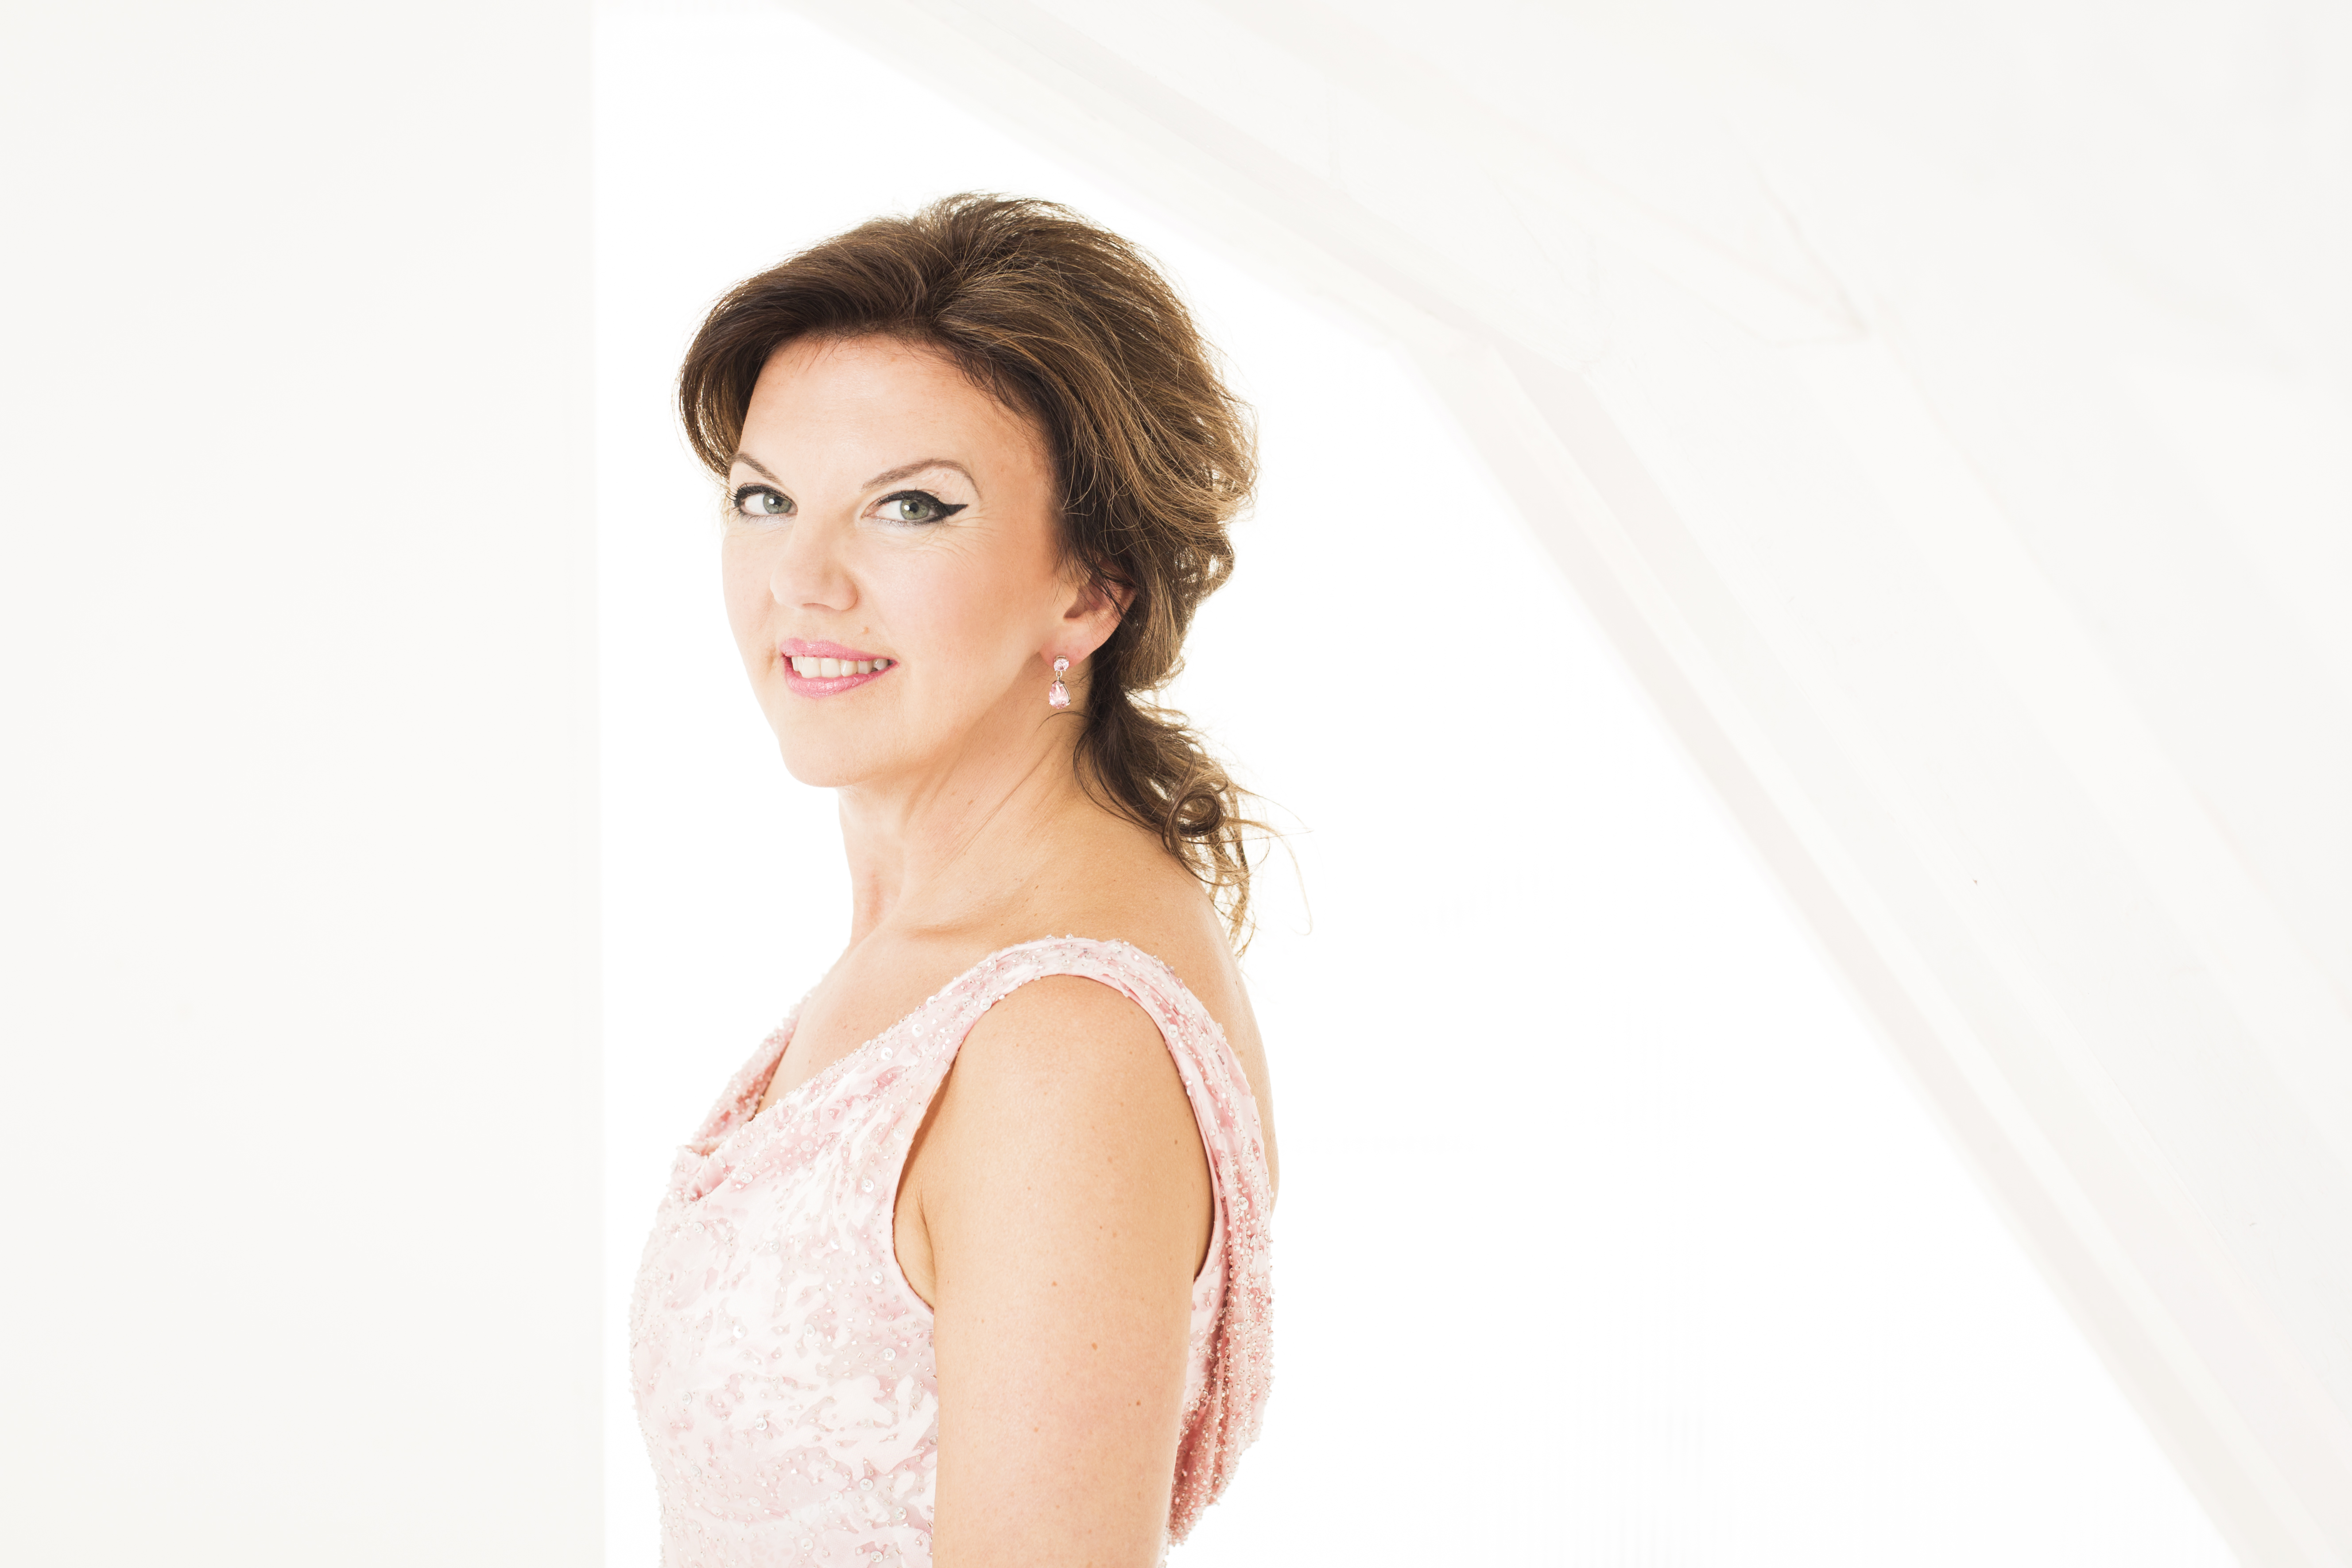 Tasmin Little Photo Credit: B. Ealovega